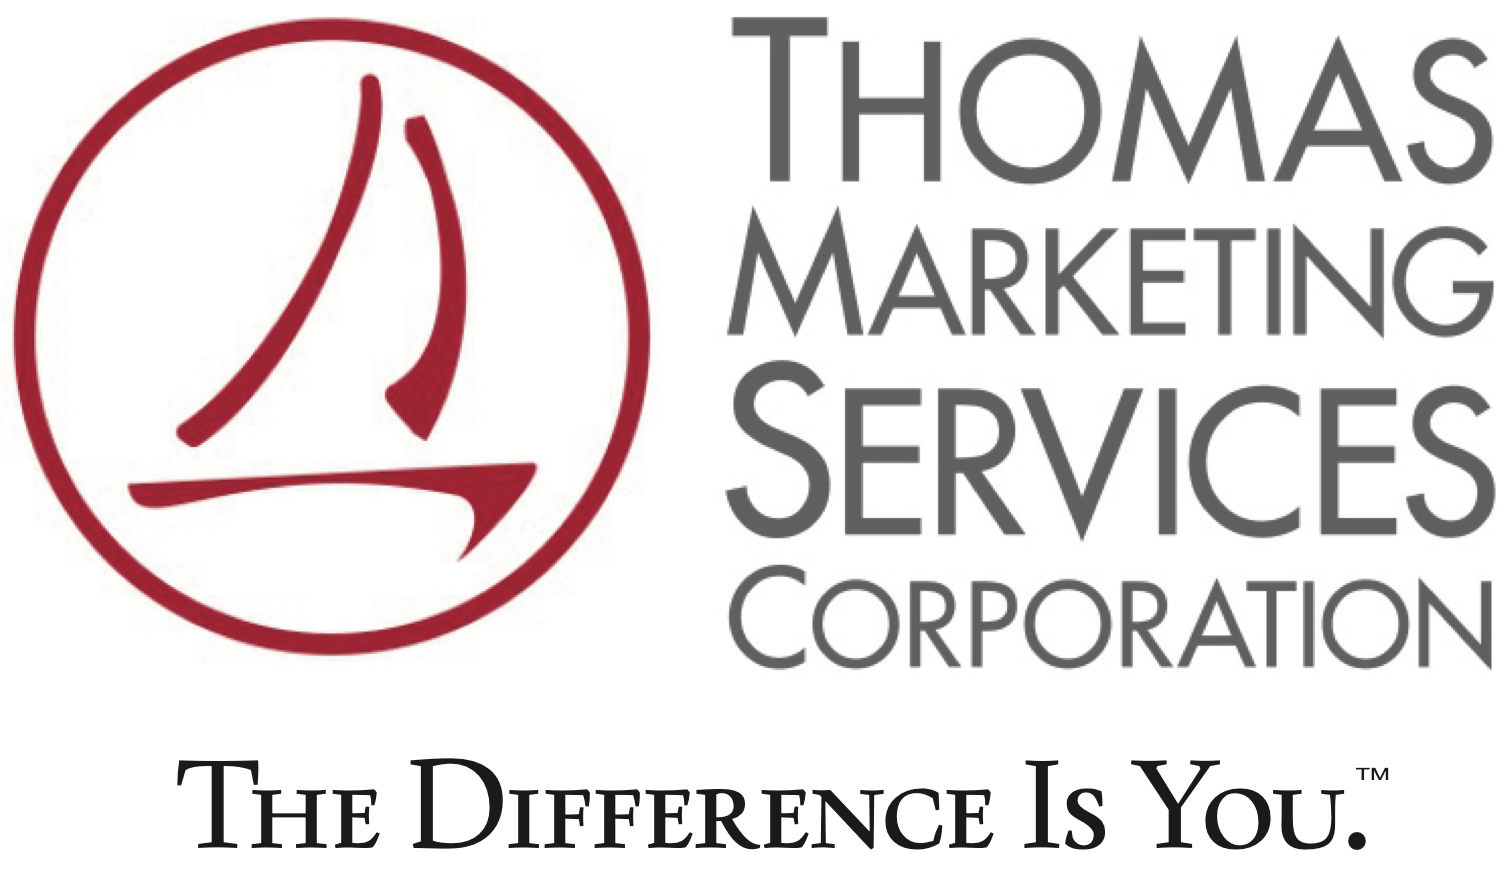 Thomas Marketing Services Corporation Master with Tag 11.19. ai